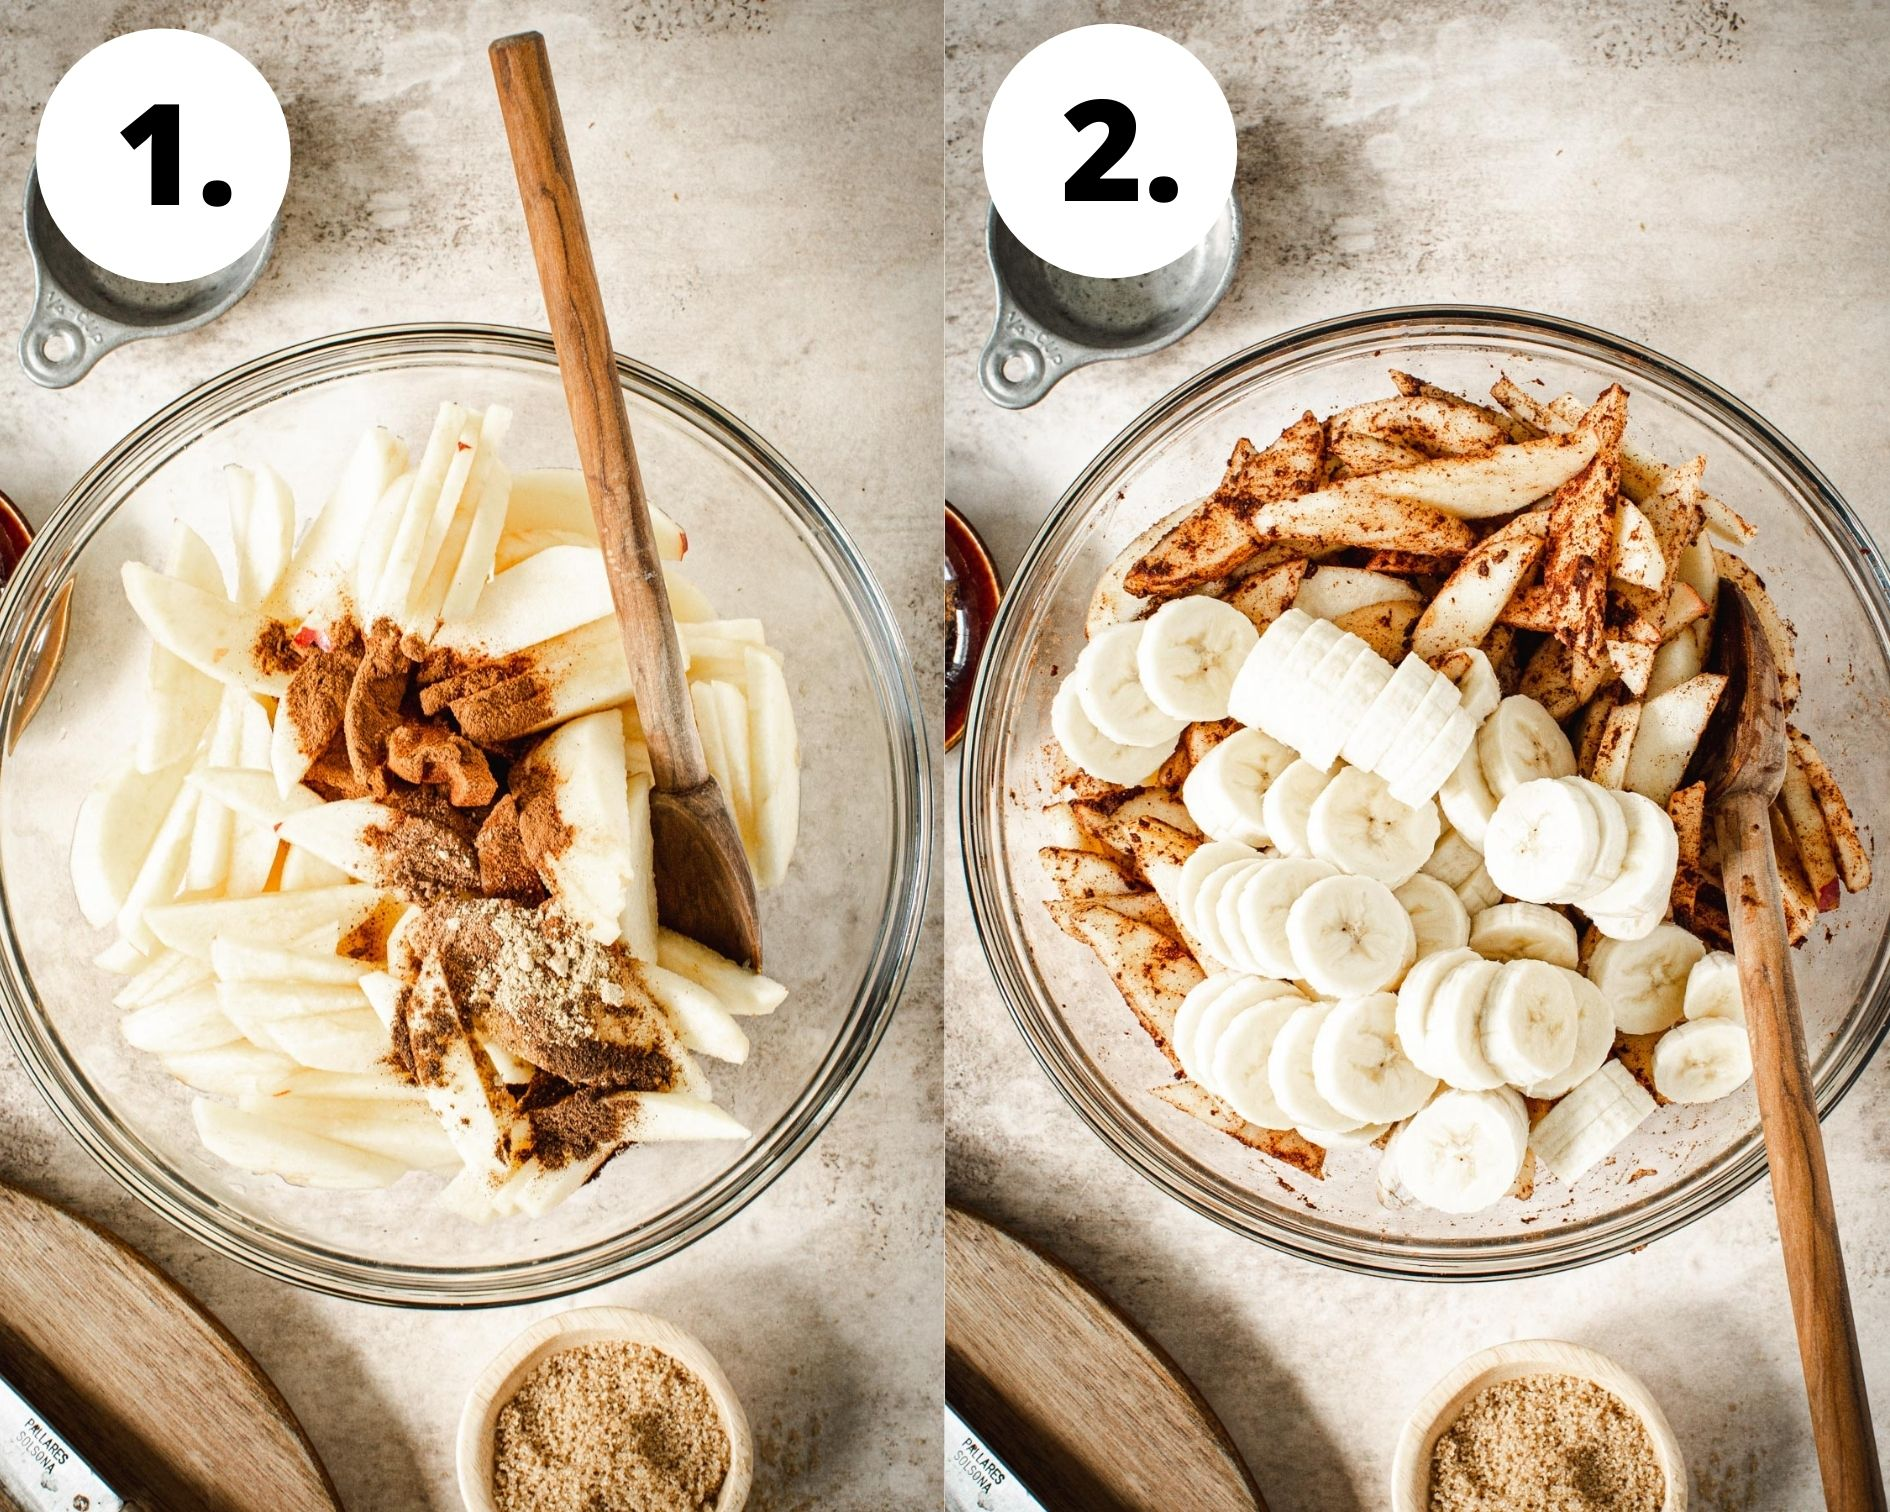 Baked apple crumble process steps 1 and 2.